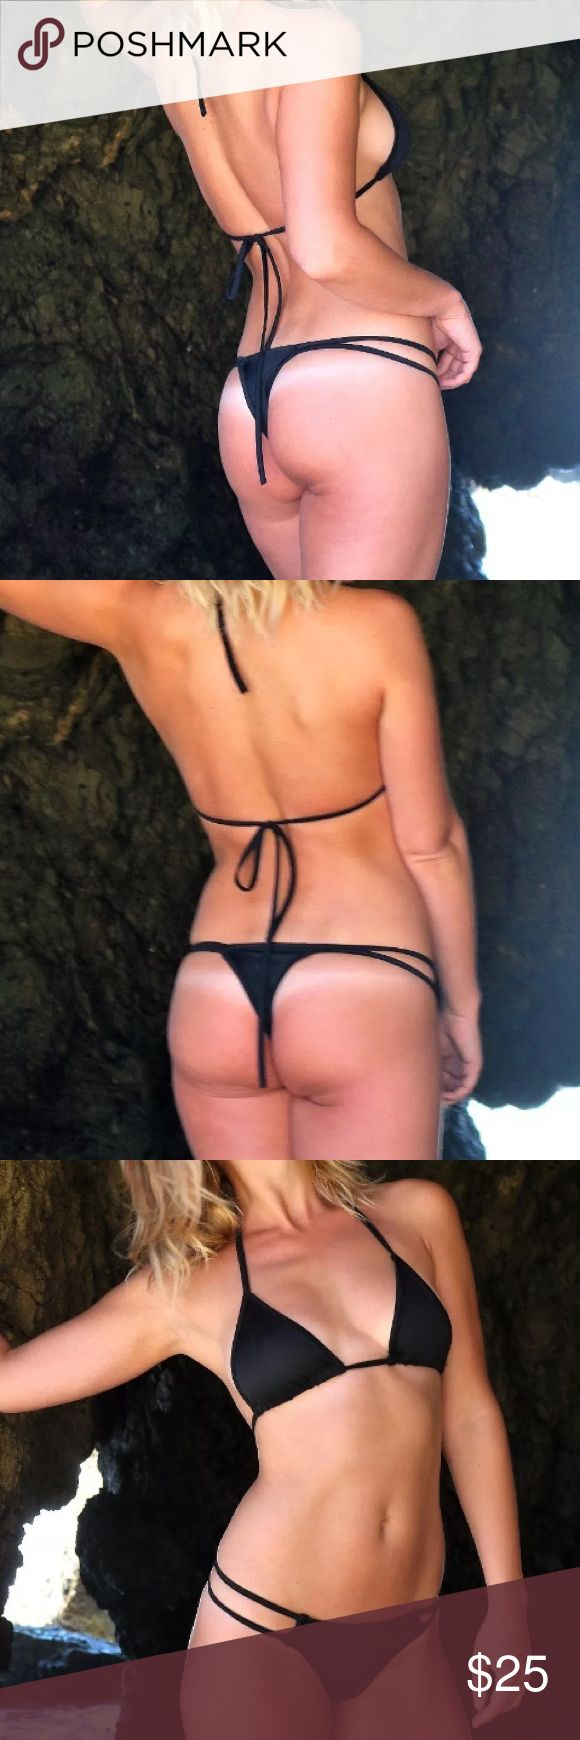 "Micro bikini black bikini thong bikini tiny bikini These are classic black micro bikini sets.   They are ""free size,""   Bust: 34"" - 37"" Waist: 24.5"" - 30"" Hip: 34.5"" - 39""  Follow us on Instagram: www.instagram.com/sassy.cool/  SHIPPING  This item is ready to ship within 1-2 business days from the time the order is placed. Swim Bikinis"